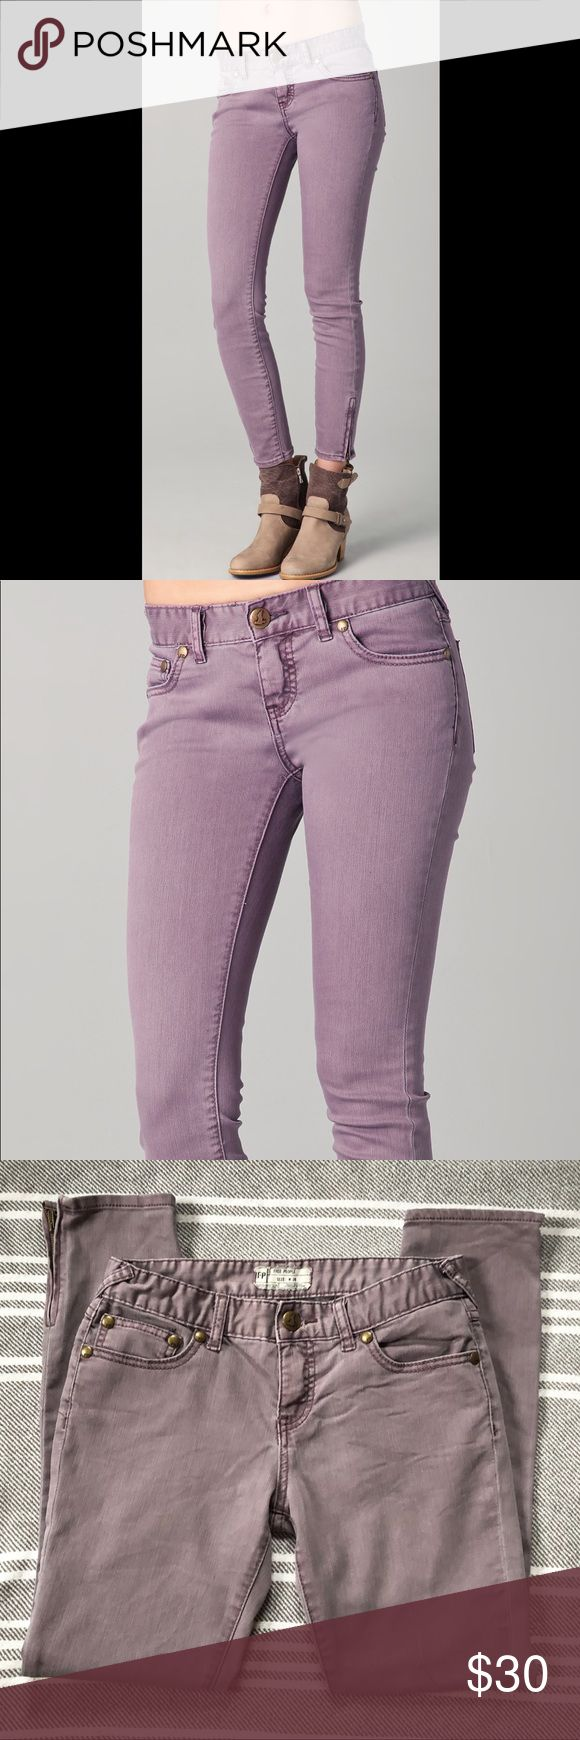 Free People The Colored Skinny Jeans Free People The Colored Skinny Jeans Light Purple Size 26 Excellent condition! These are a little more purple in person. See pictures for measurements. Free People Pants Skinny